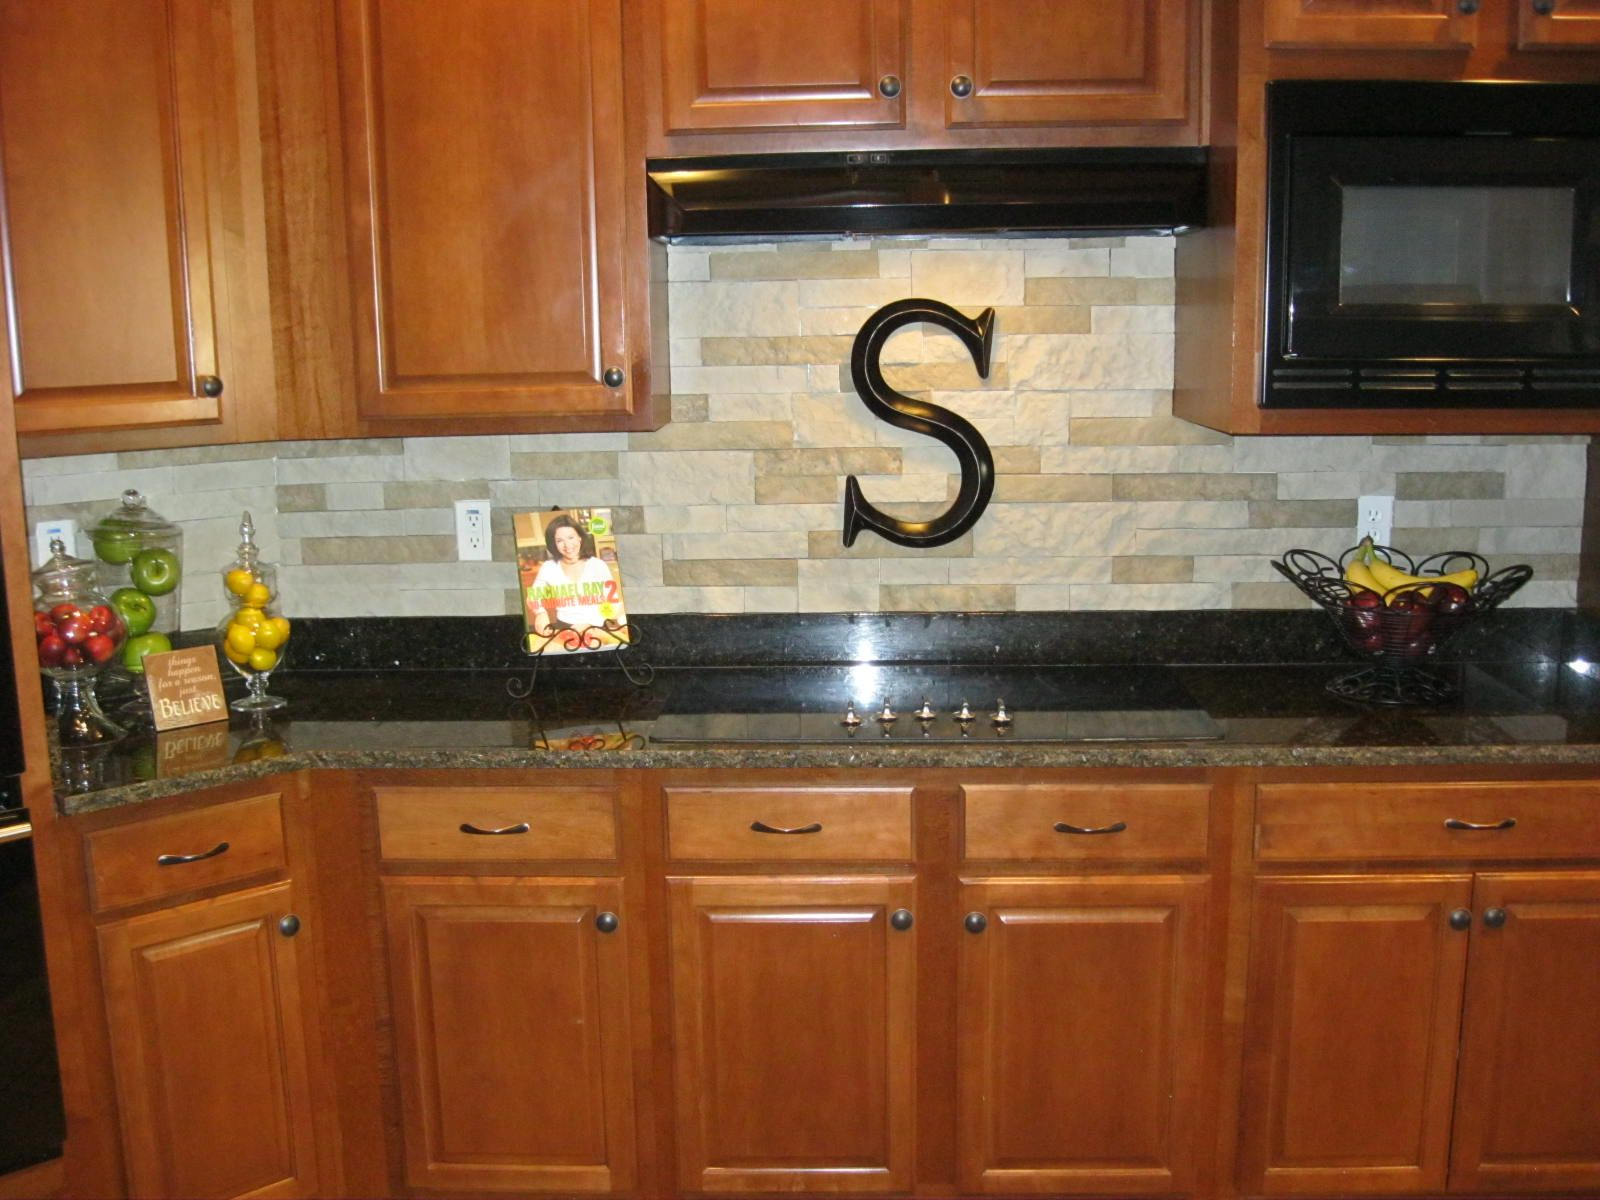 Incroyable Our New Stacked Stone Backsplash. We Used AirStone Sold At Lowes   Very  Lightweight U0026